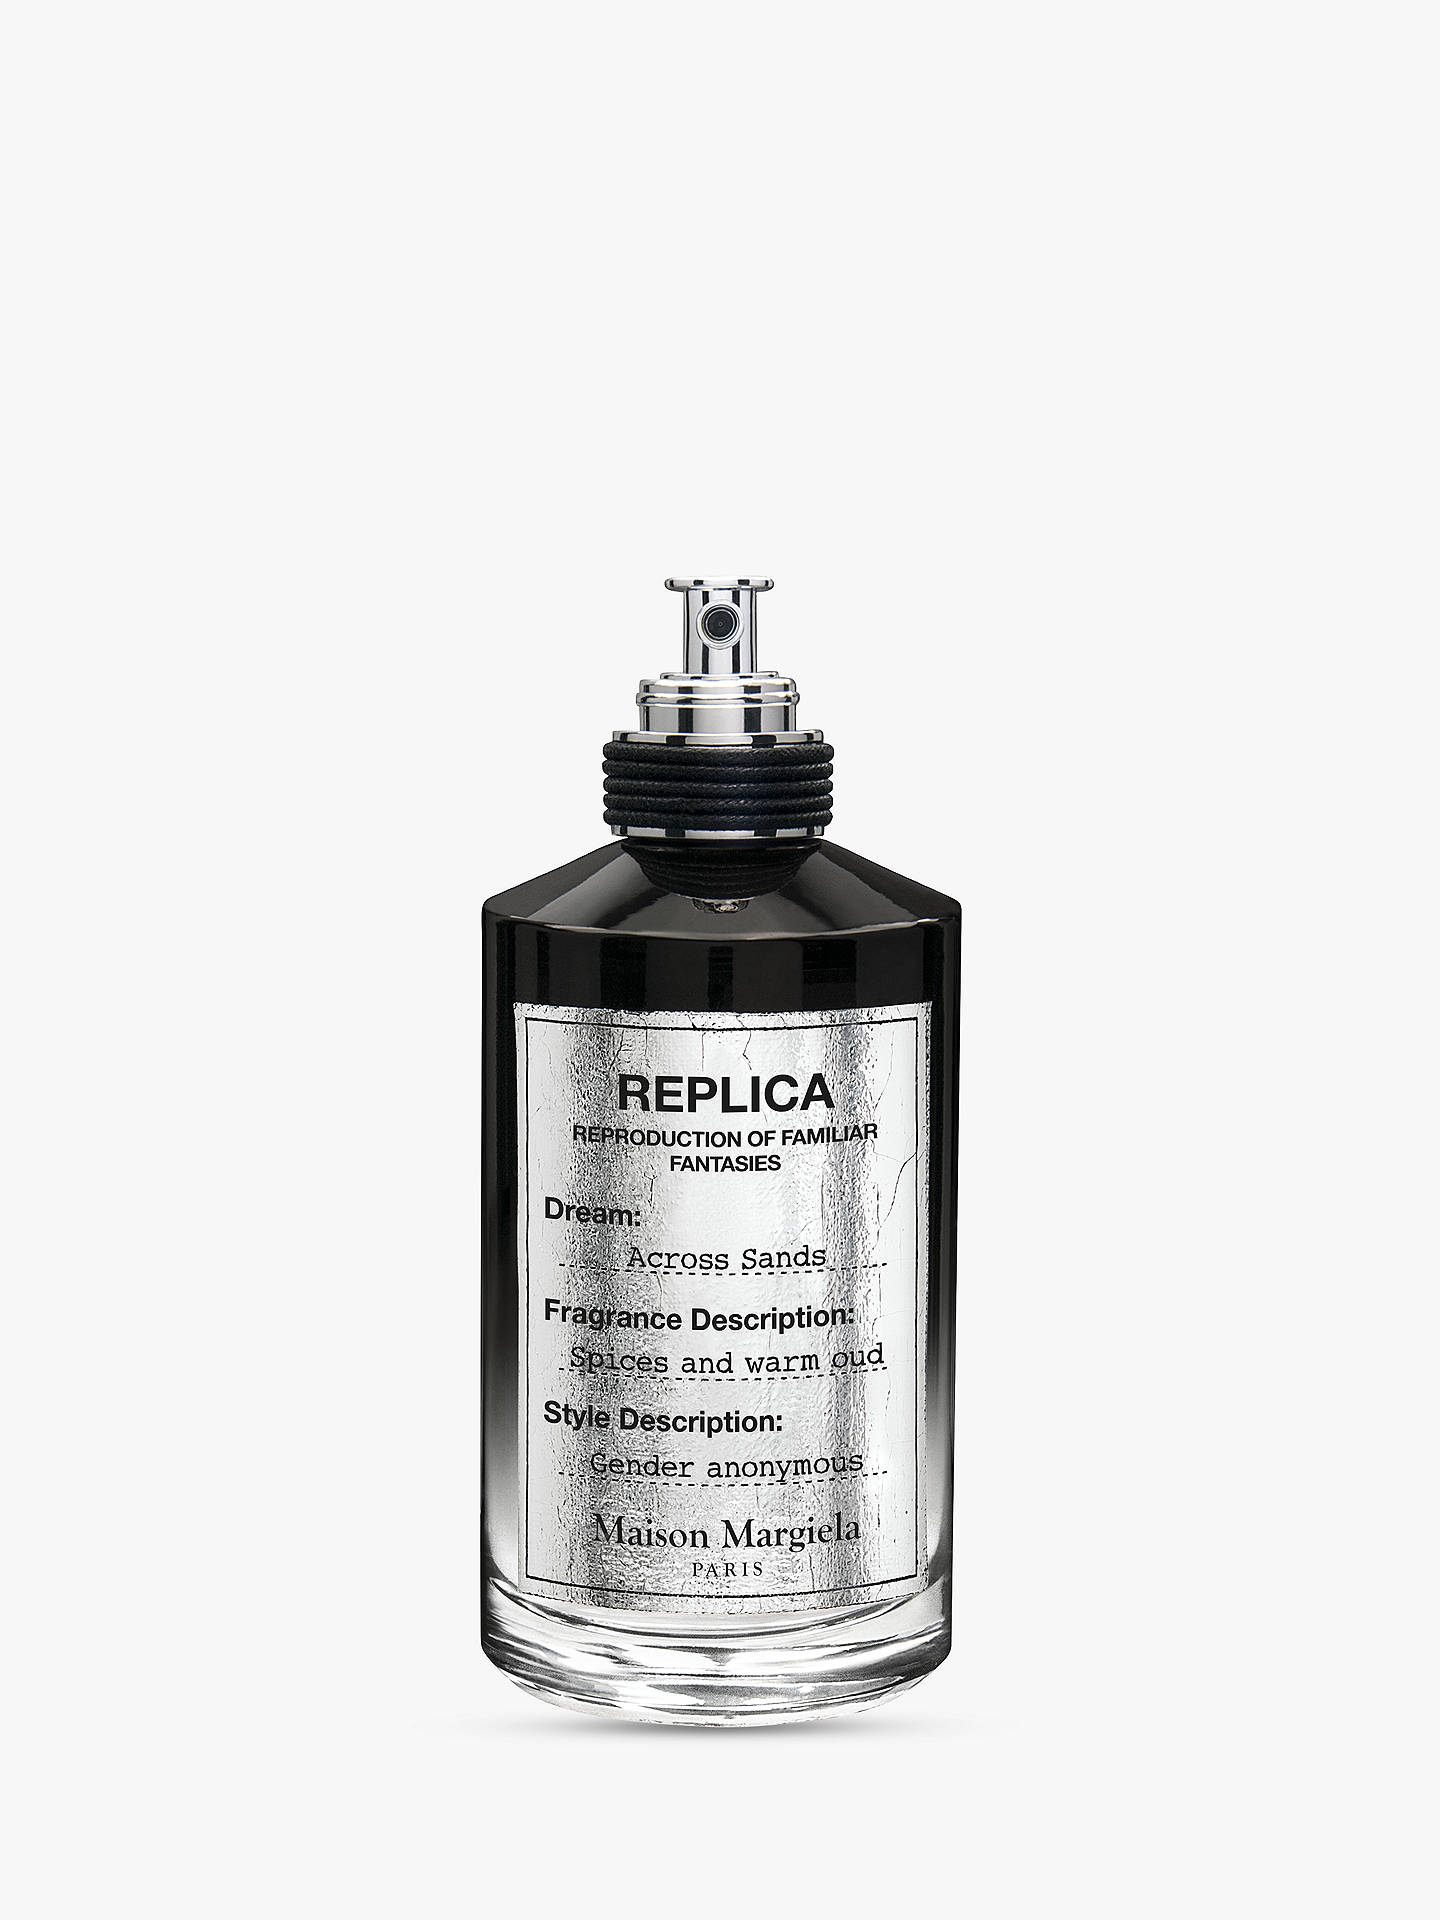 BuyMaison Margiela Replica Across Sands Eau de Parfum, 100ml Online at johnlewis.com